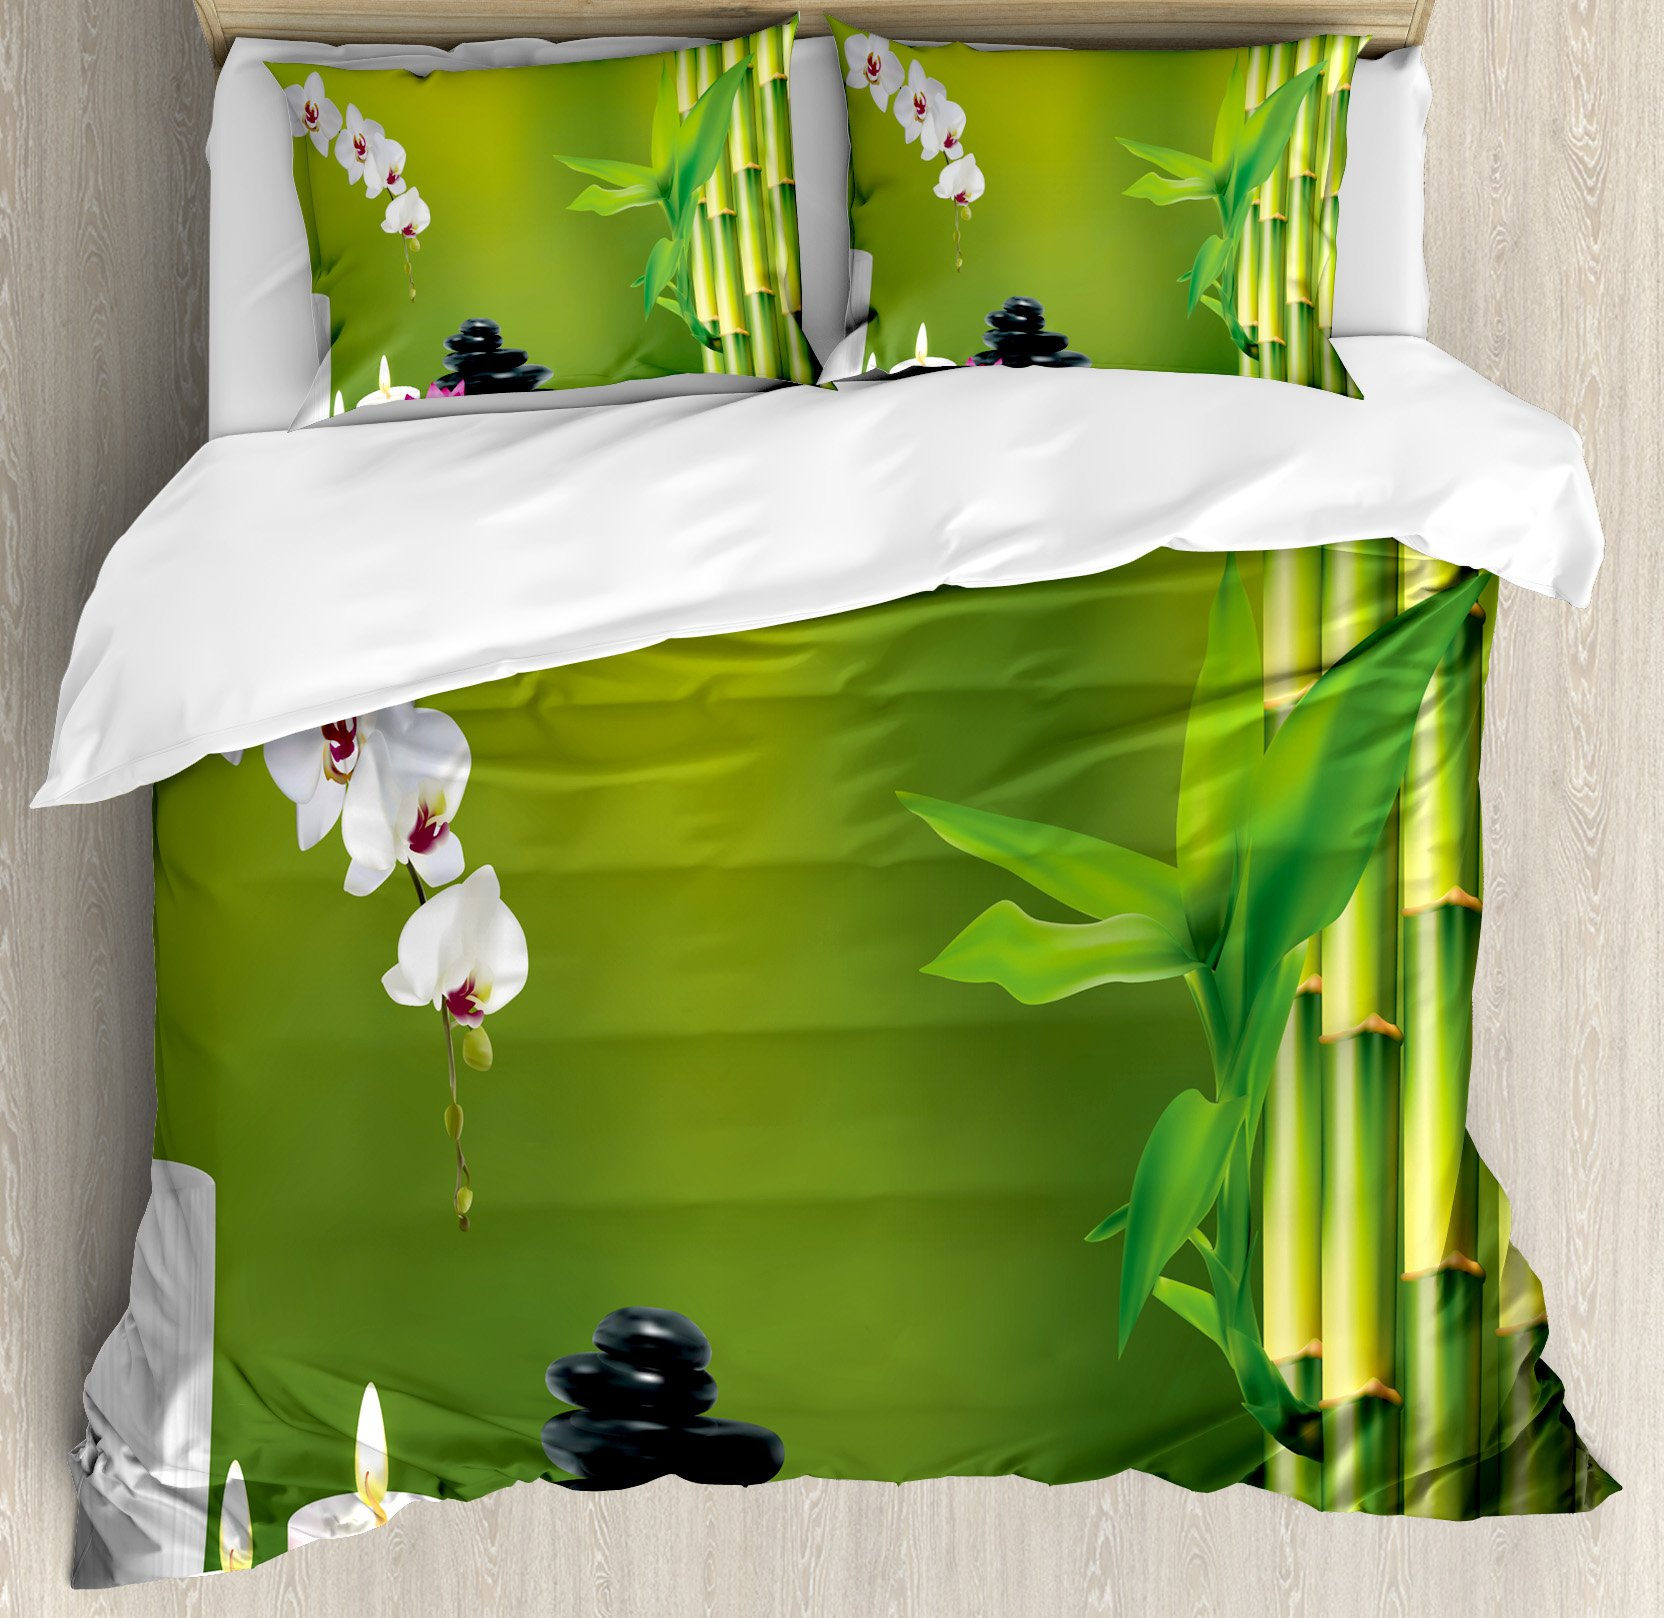 Spa Decor Duvet Cover Set King Size by Ambesonne, Bamboo Flower Stone Wax on the Table Orchid Rock Healthy Lifestyle, Decorative 3 Piece Bedding Set with 2 Pillow Shams